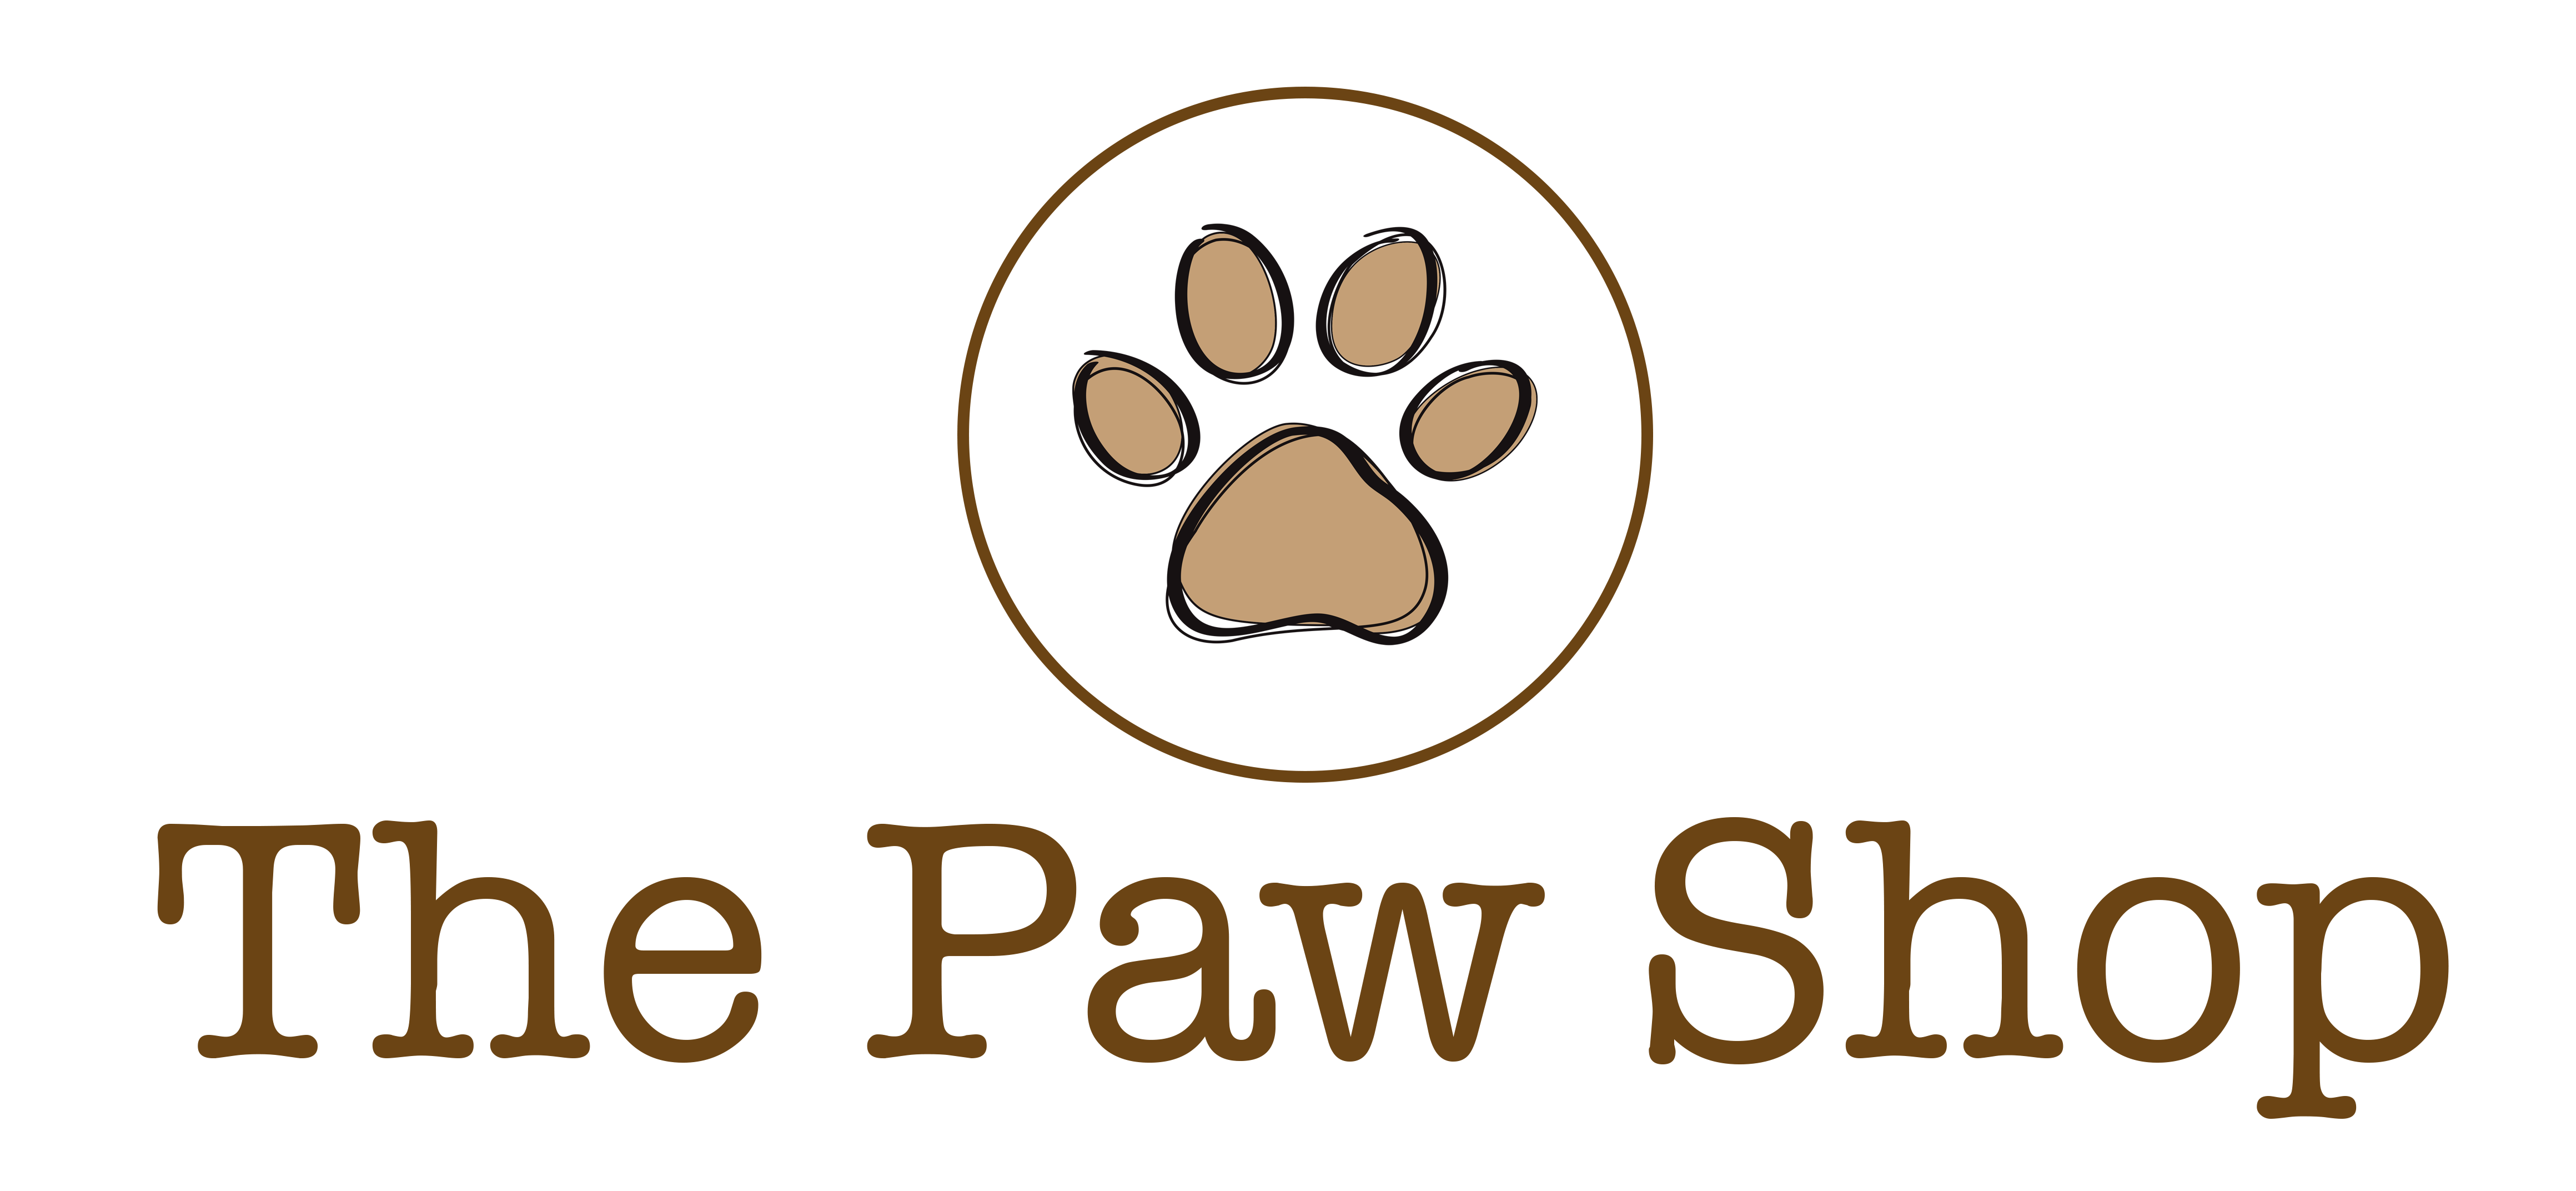 The Paw Shop